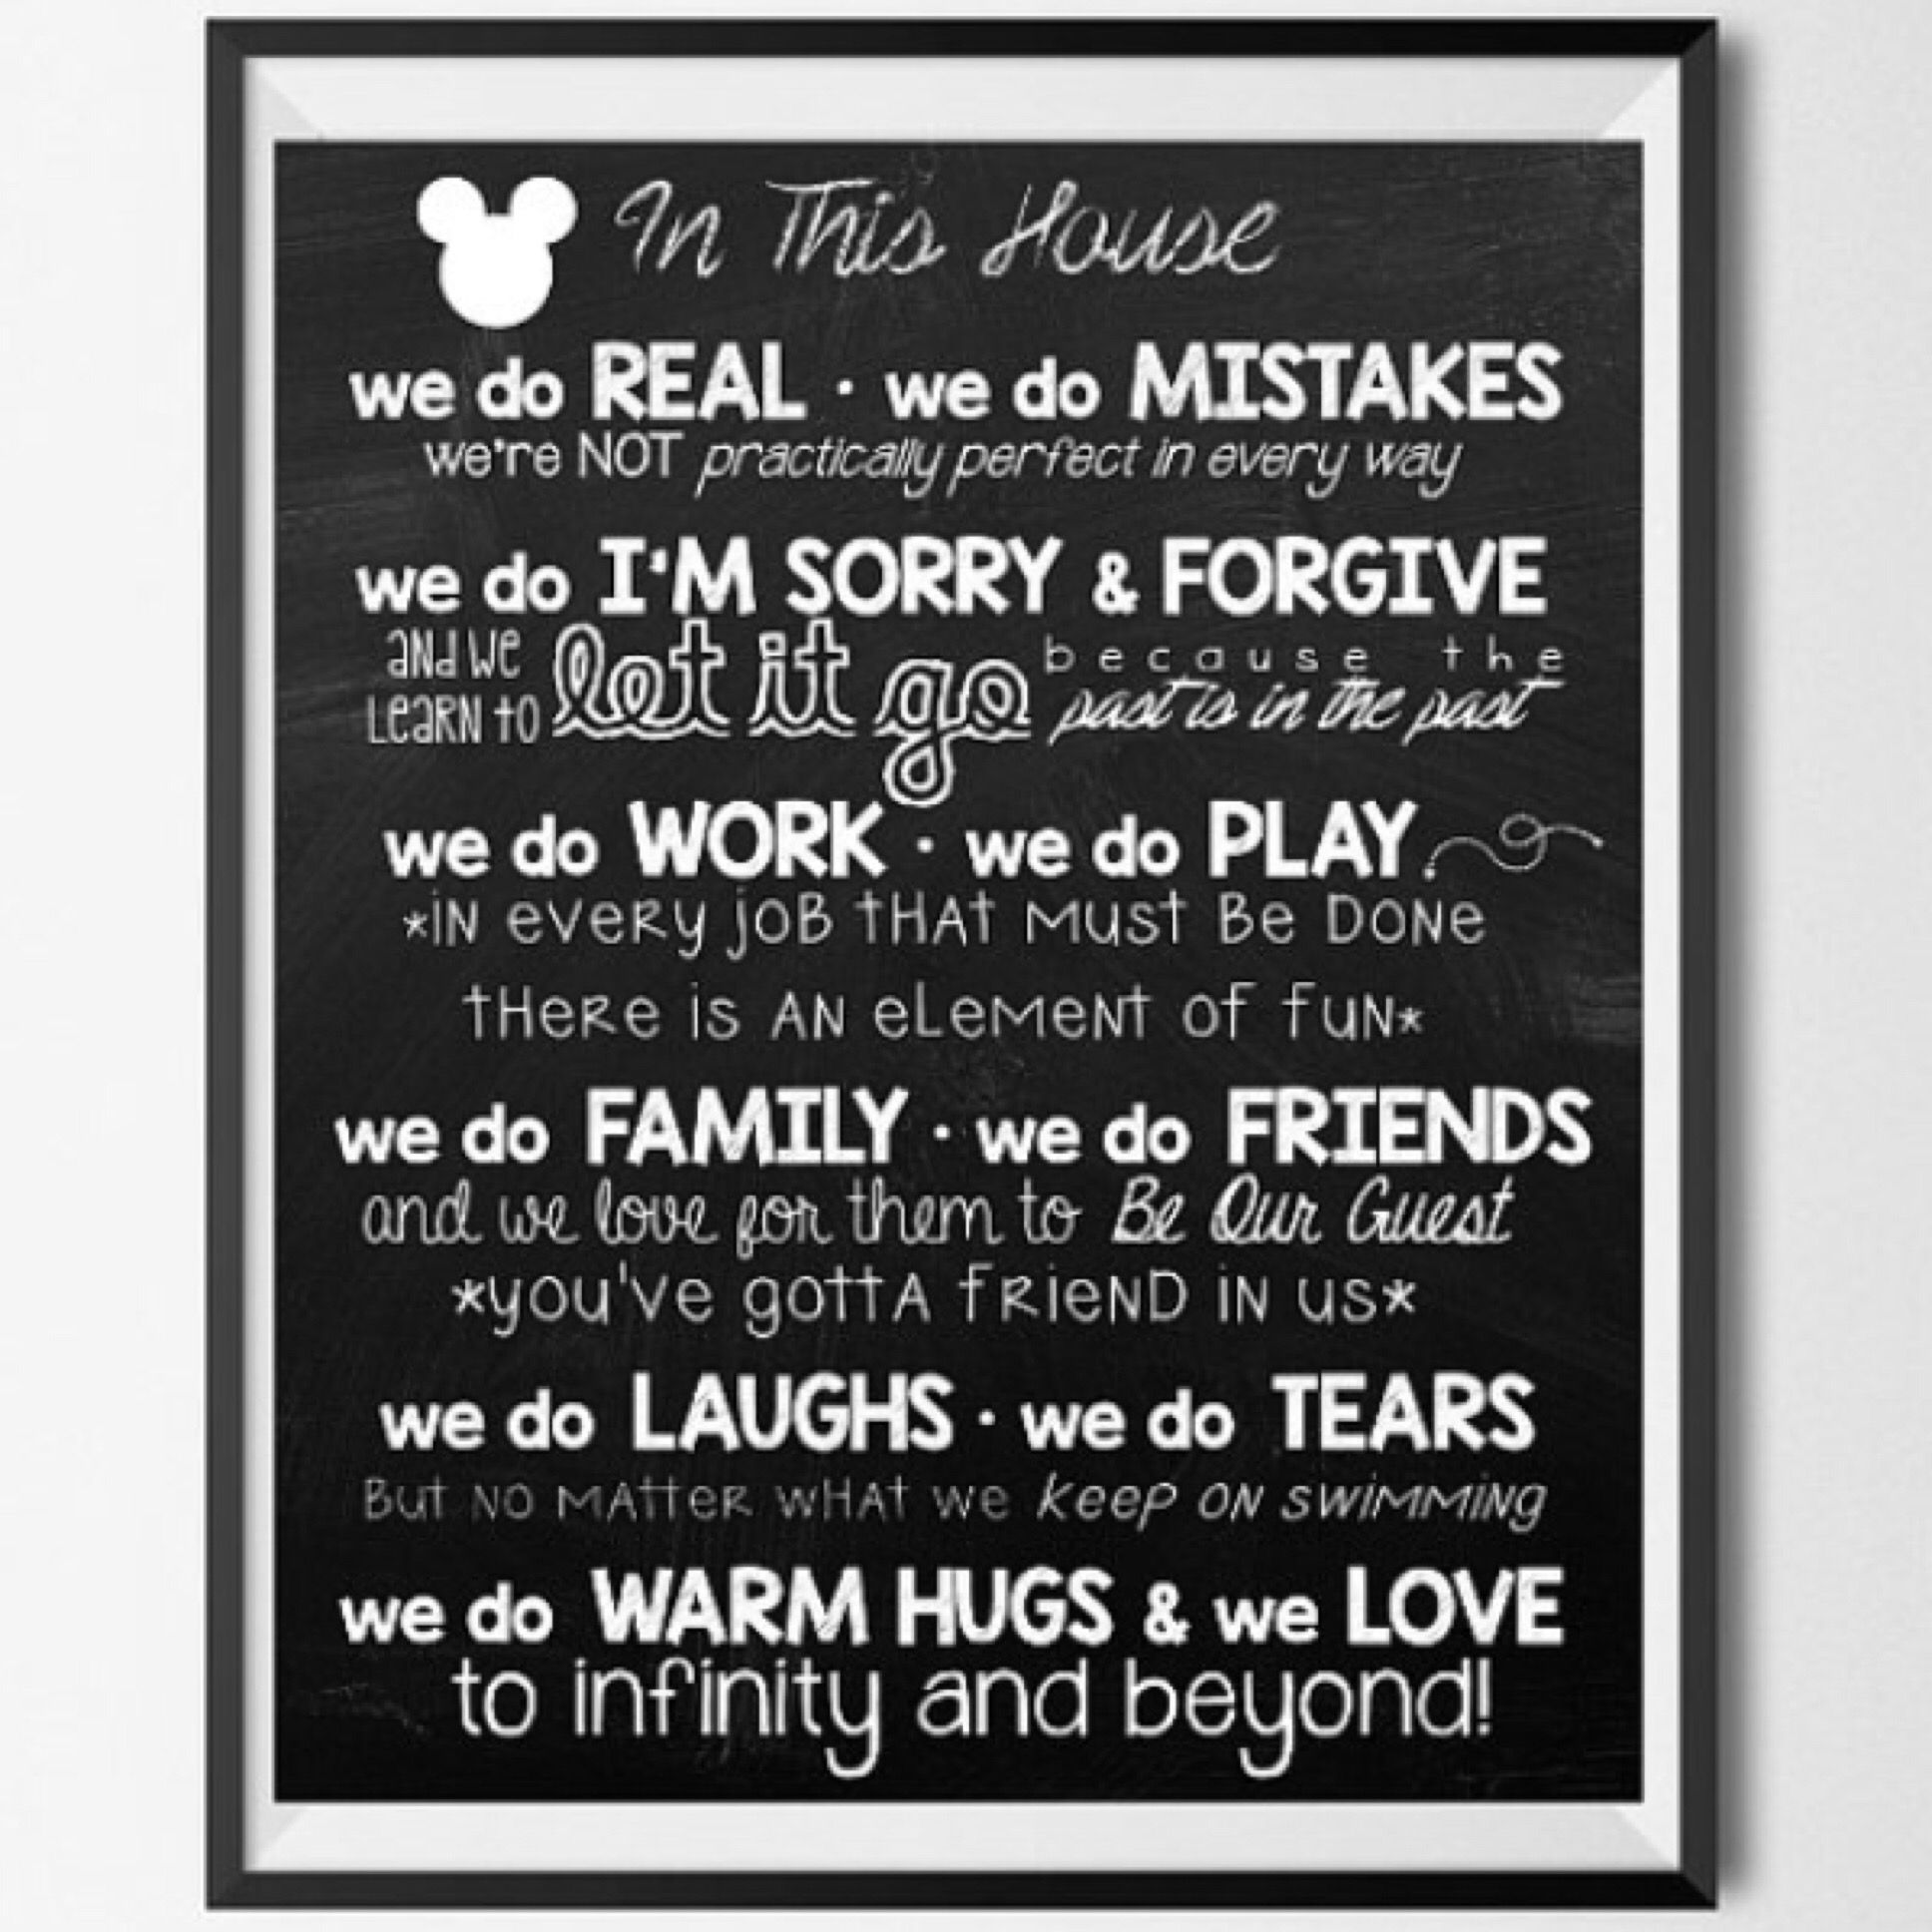 Adorable 8x10 Disney House Rules Printable Wall Art In This House We Chalkboard Wall Art Etsy Prints